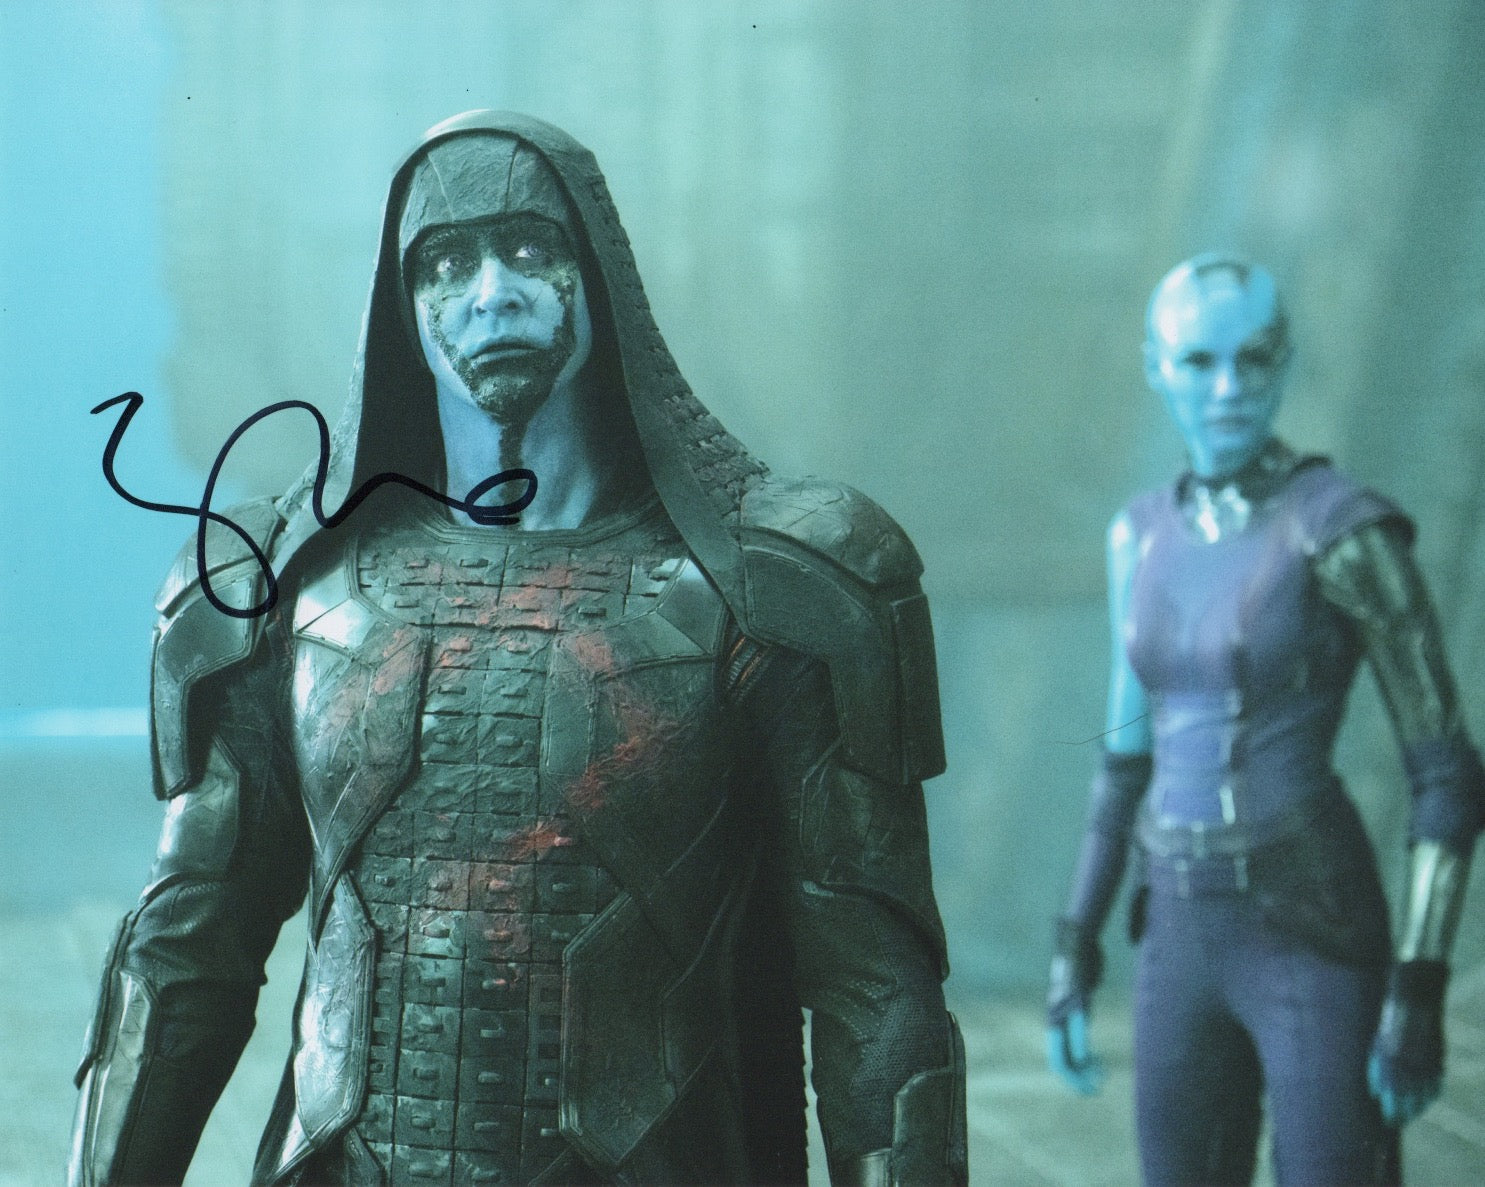 Lee Pace Guardians of the Galaxy Signed Autograph 8x10 Photo #6